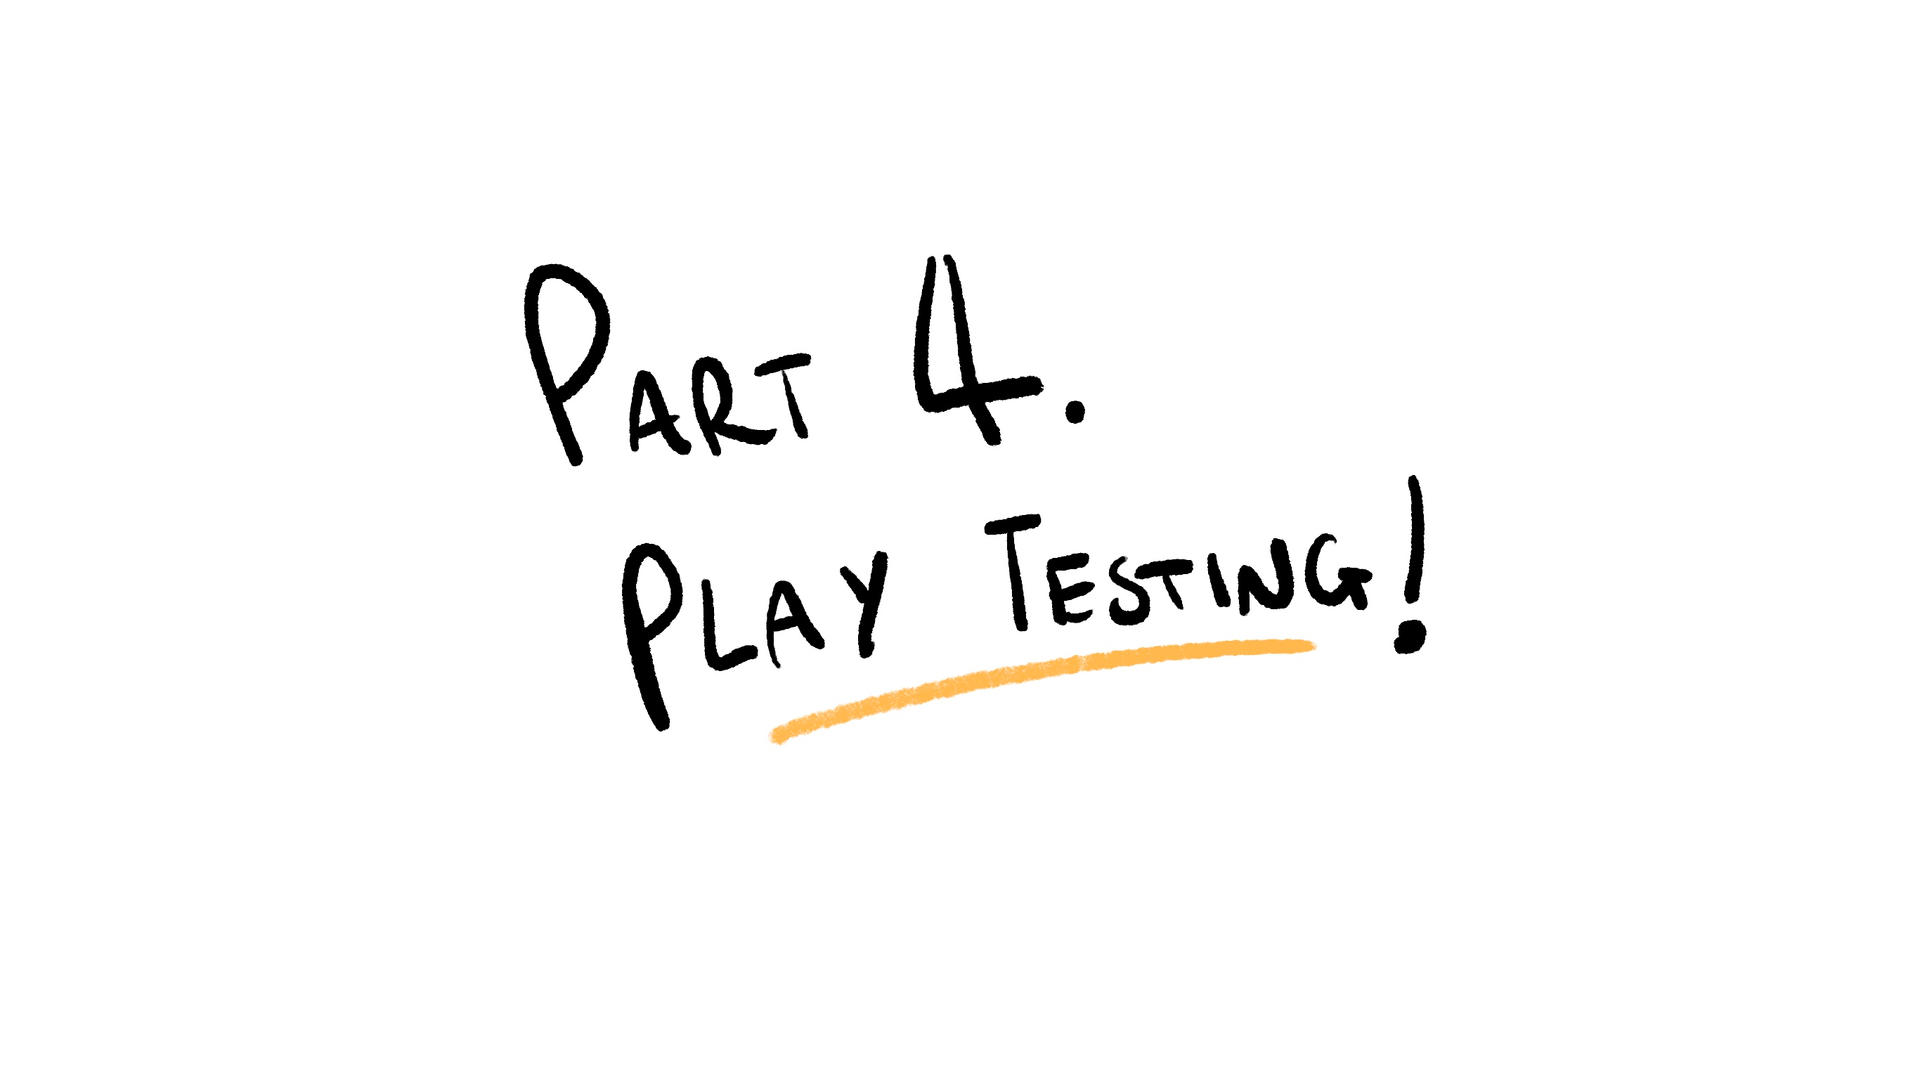 Part 4 - Play-testing